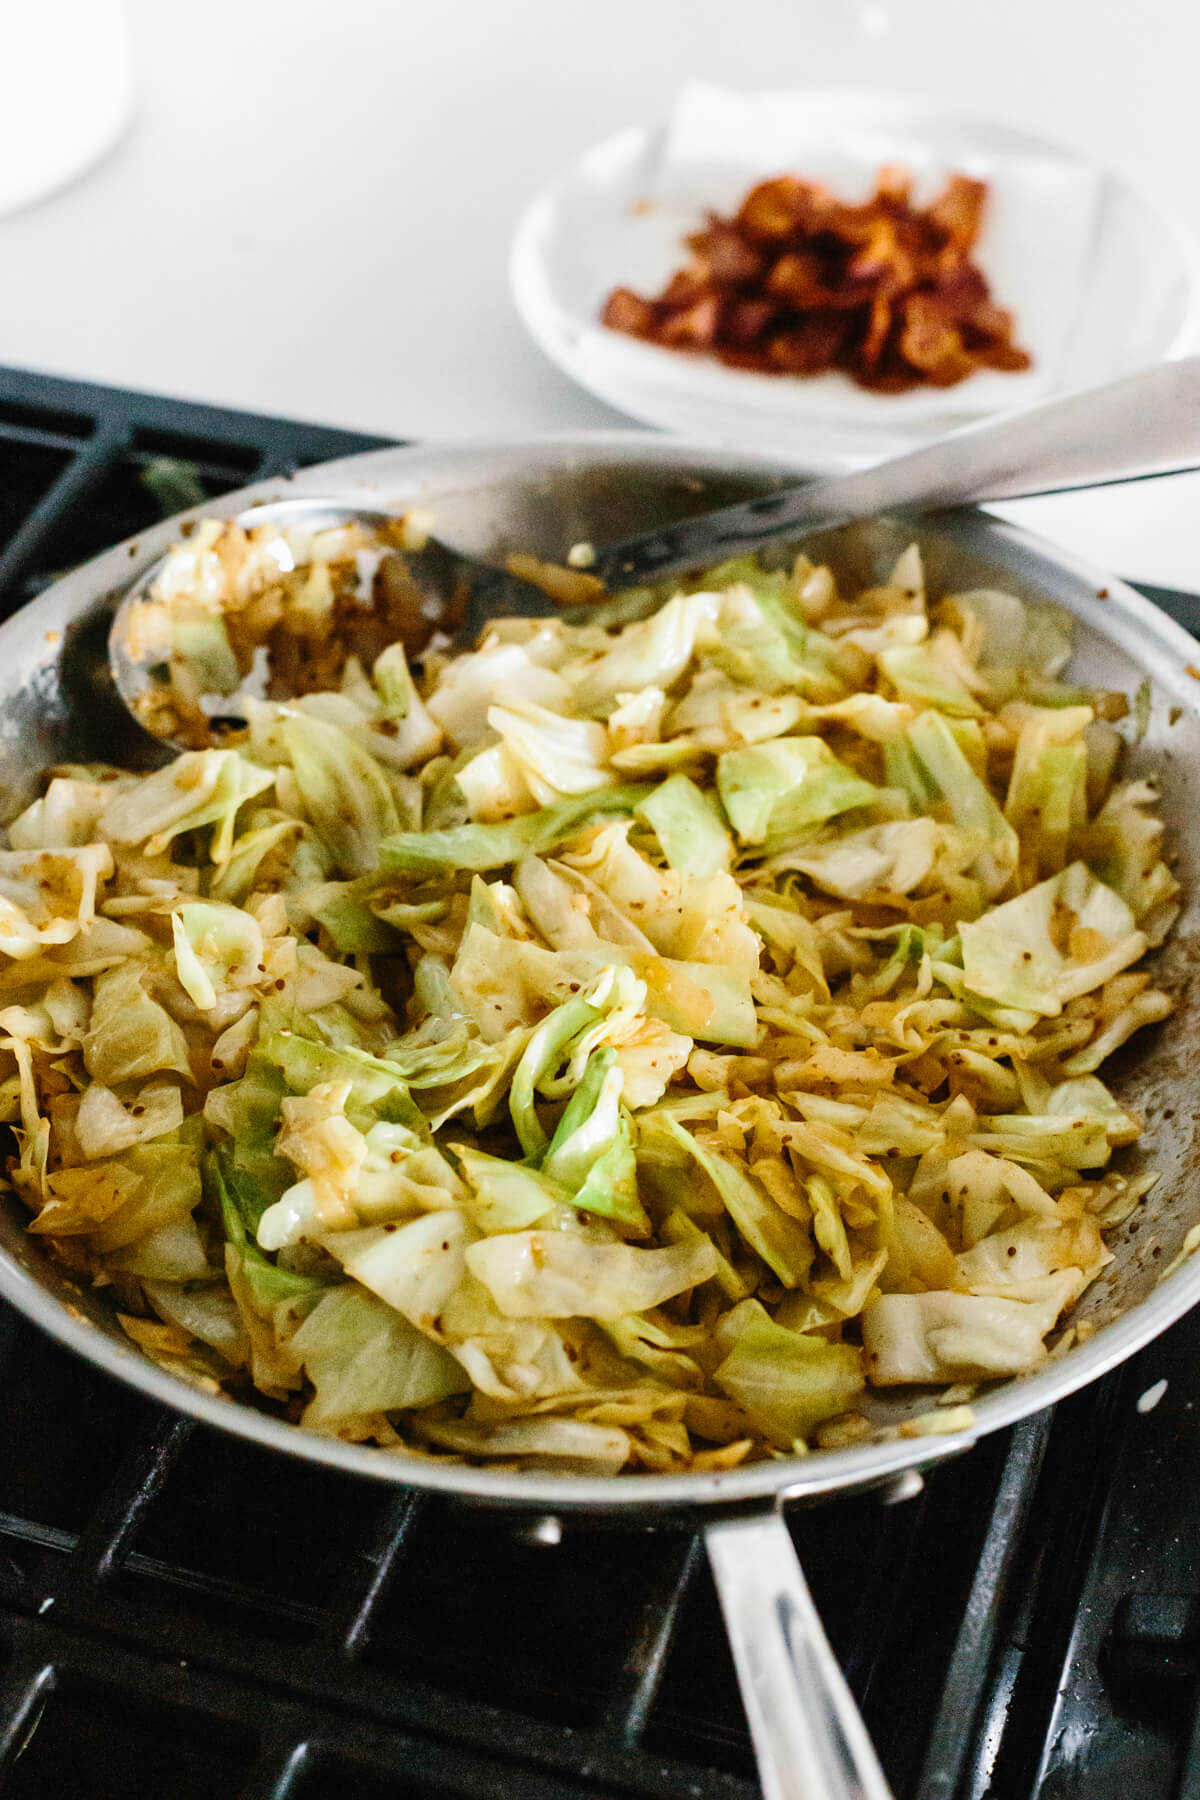 Sauteed cabbage in a pan on the stovetop.